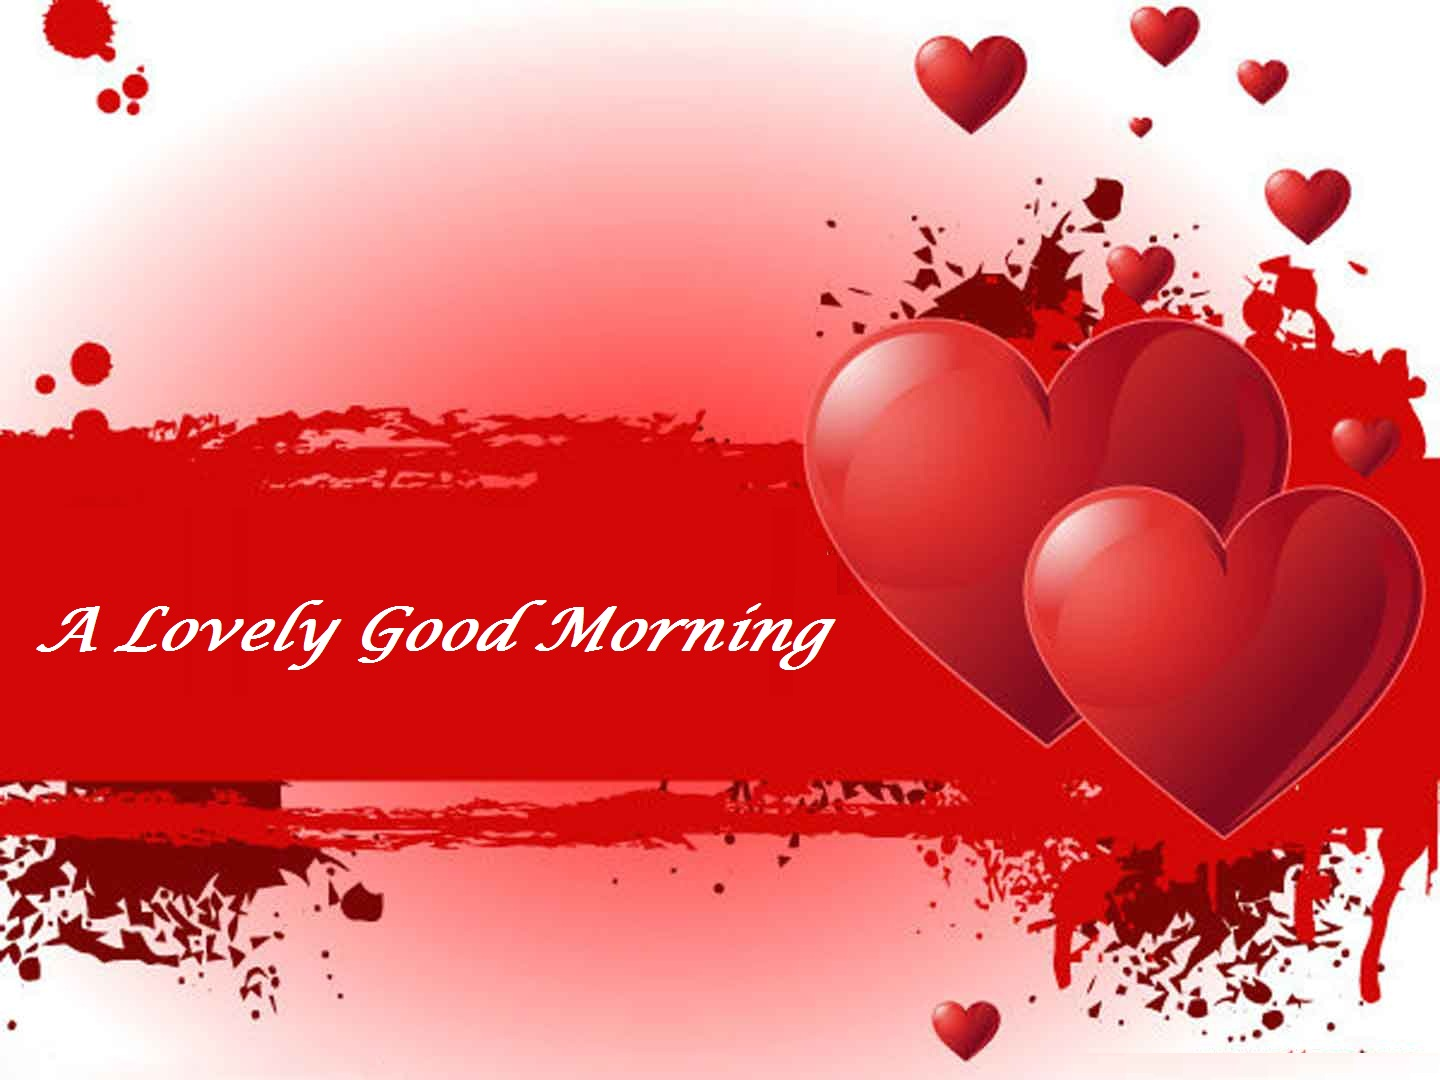 Lovely sweet good morning ecards wallpaper pics